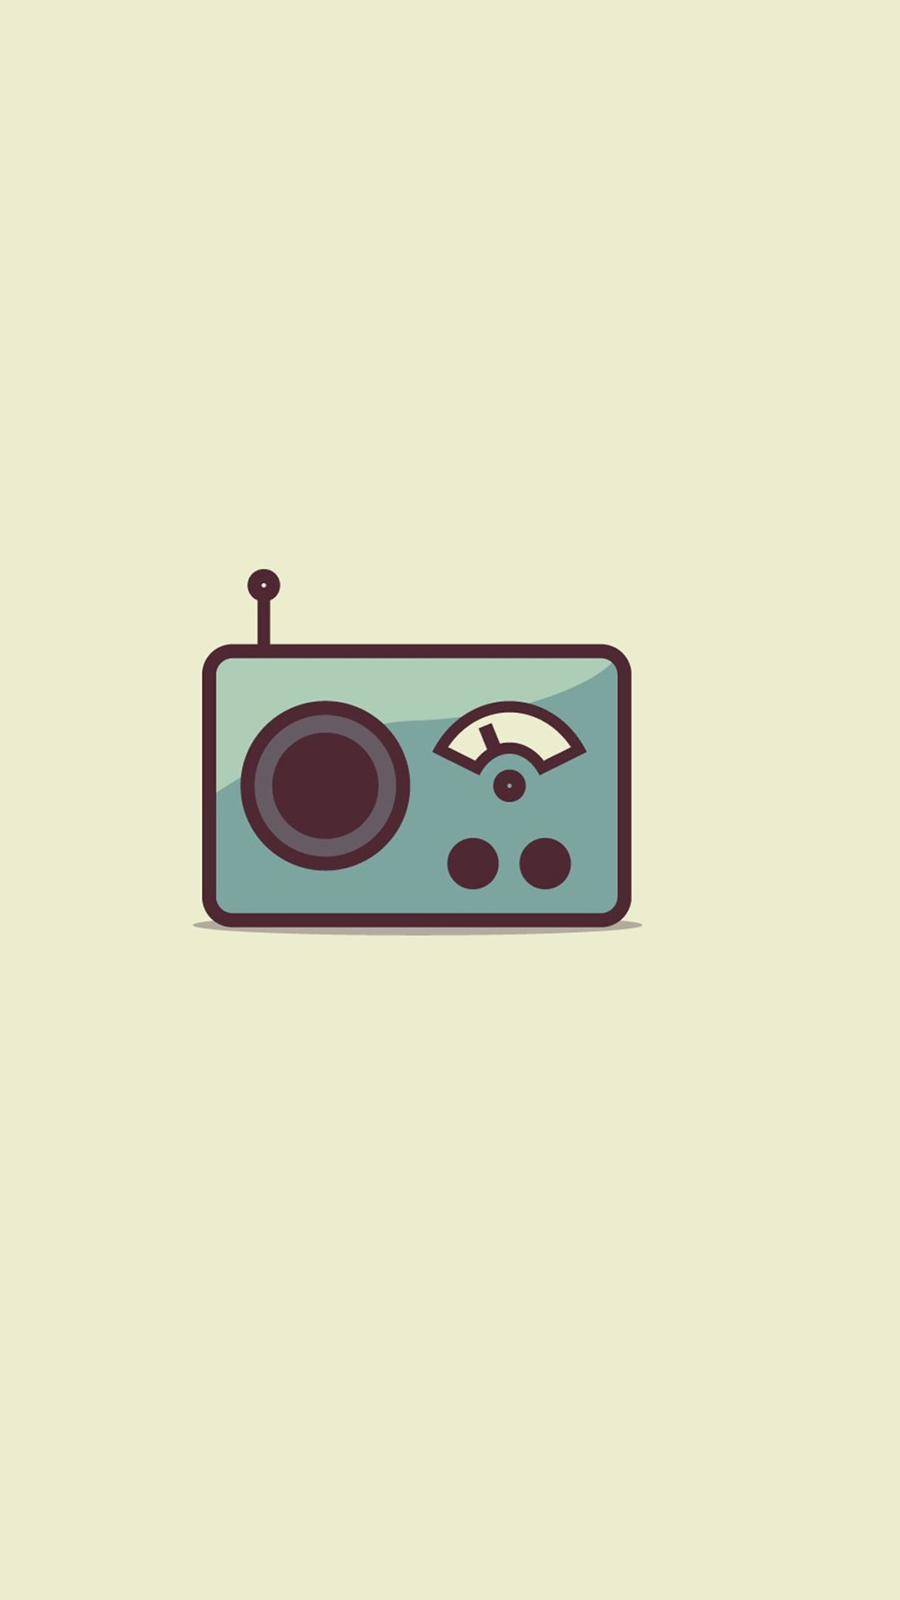 Cute Radio Background Wallpapers Free Download